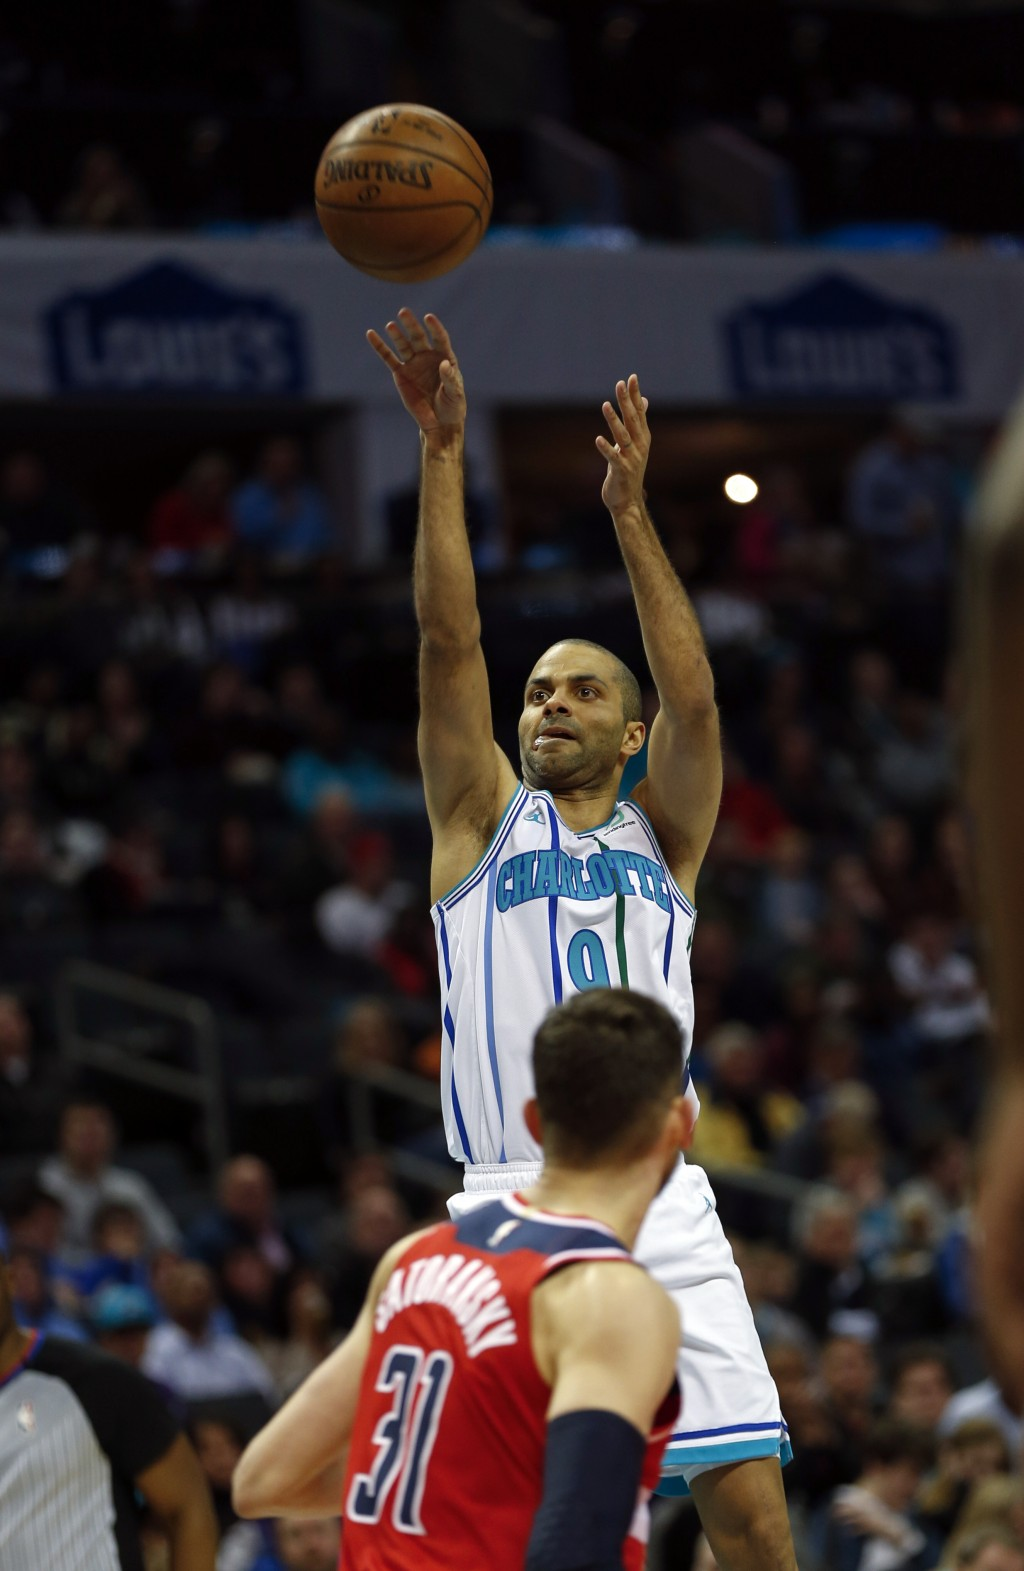 Charlotte Hornets guard Tony Parker (9) shoots over Washington Wizards guard Tomas Satoransky (31) in the first half of an NBA basketball game in Char